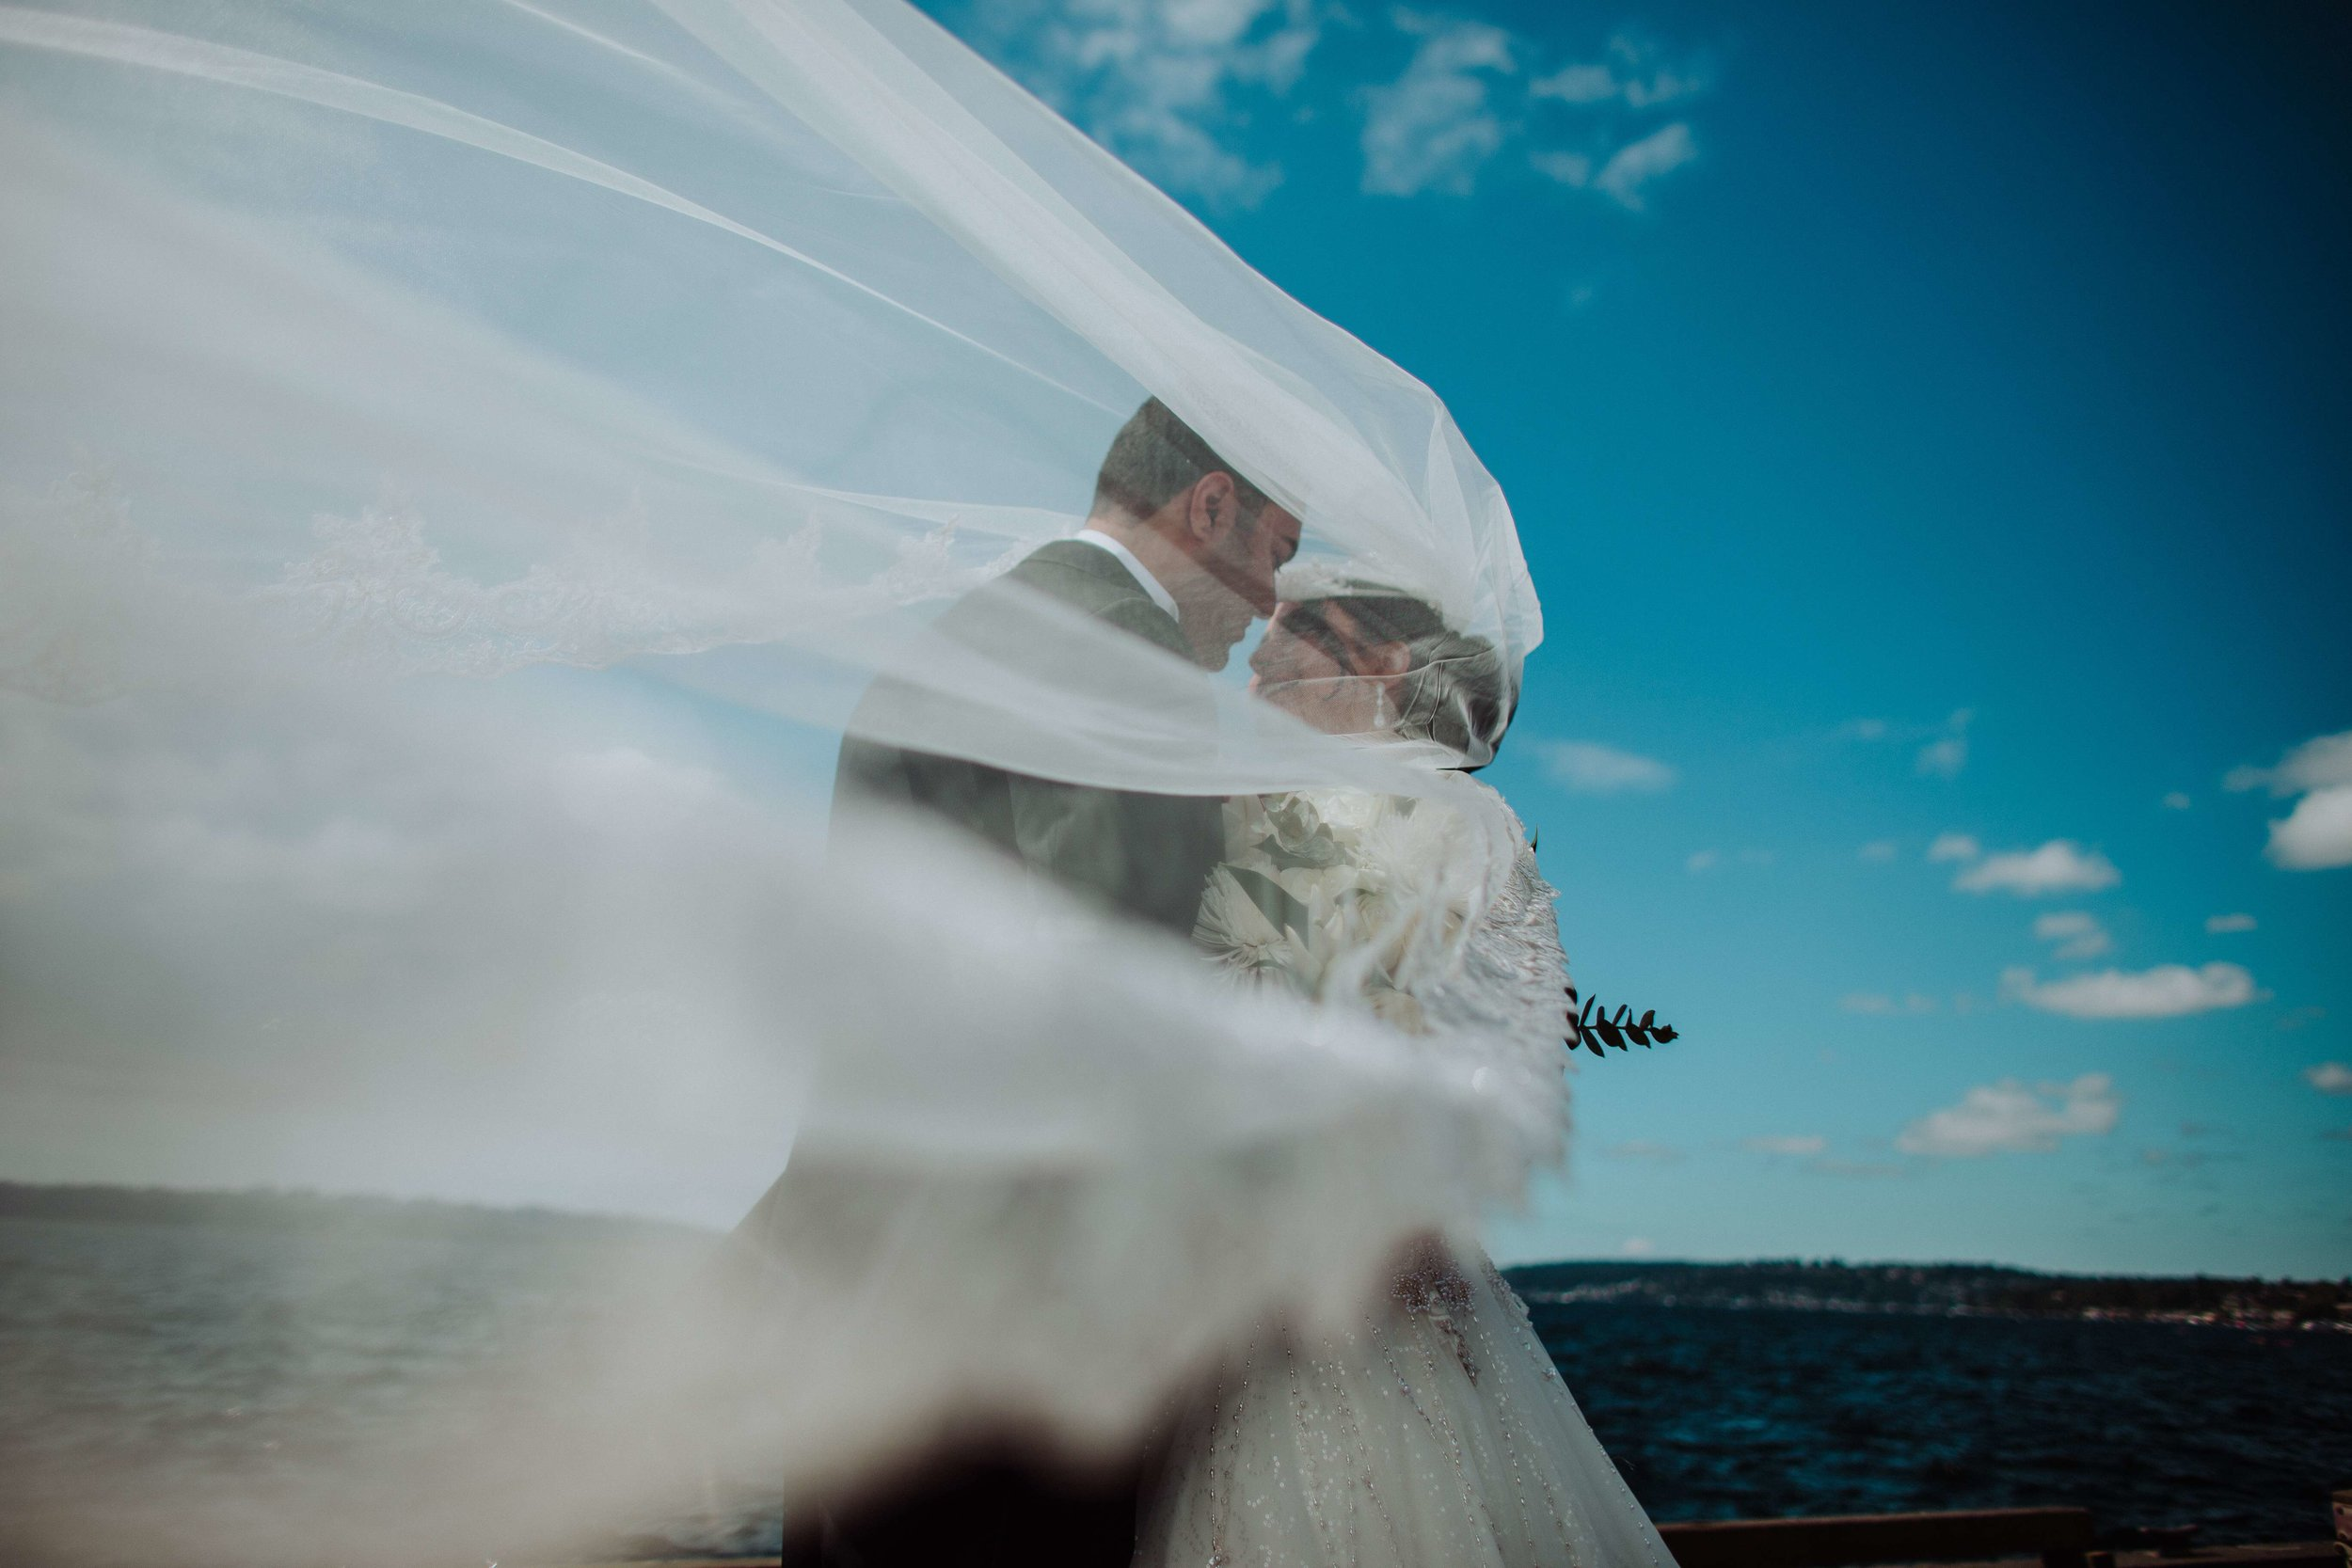 Sylvia and Michael. A wedding portrait with her veil at the Woodmark Hotel before their wedding.